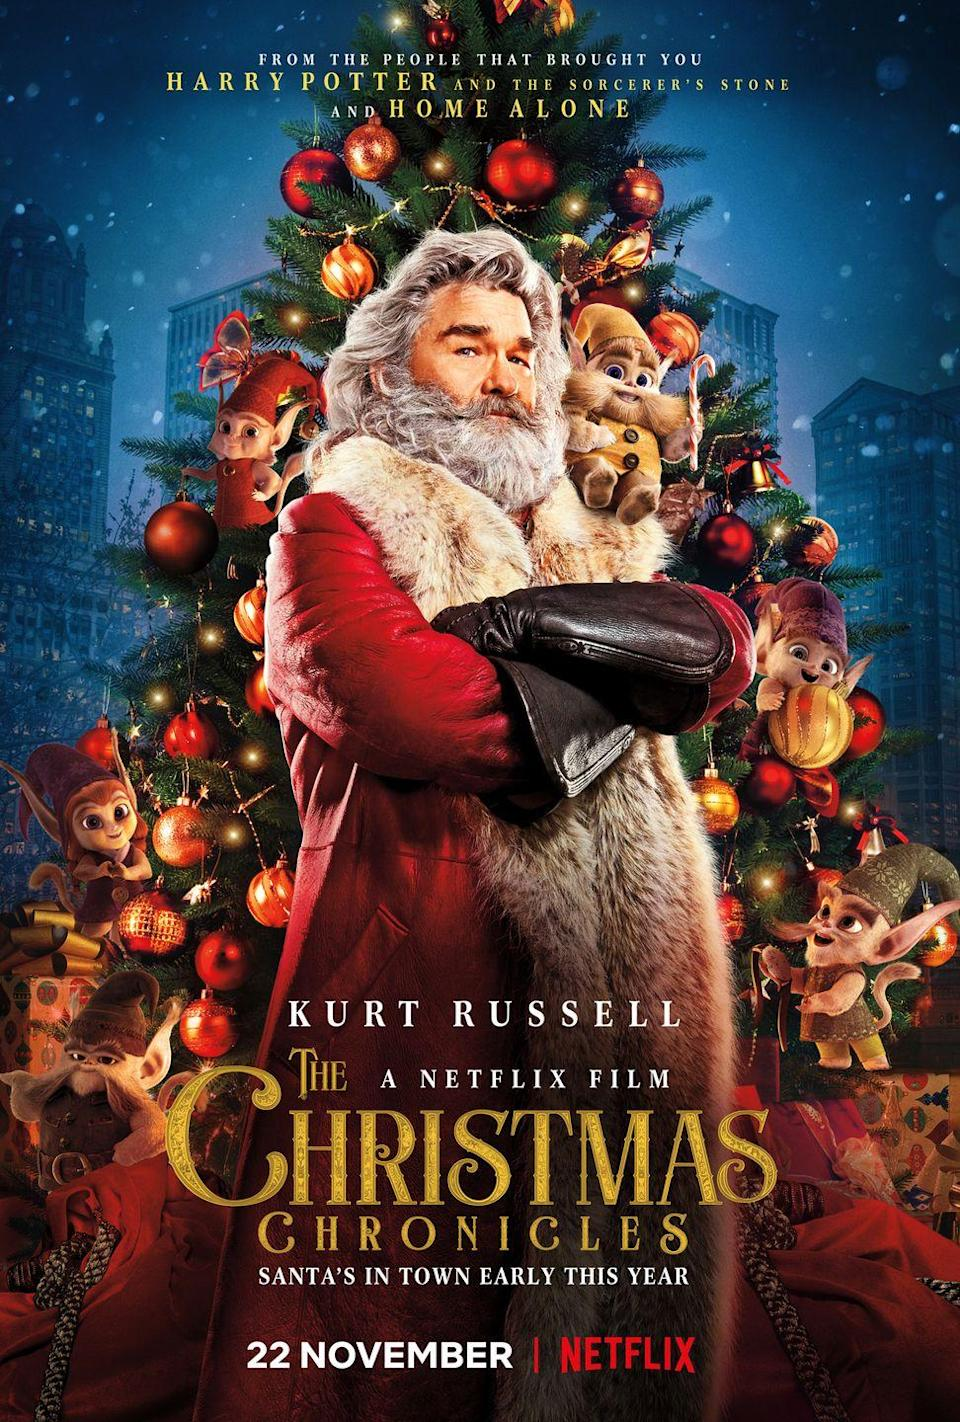 """<p>Kurt Russell stars as a cool-as-hell Santa (obviously) who gets stuck after two kids steal away in his sleigh (landing them on the naughty list, for sure). Come for Kurt, stay for the hilarious dialogue.</p><p><a class=""""link rapid-noclick-resp"""" href=""""https://www.netflix.com/title/80199682"""" rel=""""nofollow noopener"""" target=""""_blank"""" data-ylk=""""slk:Watch Now"""">Watch Now</a></p>"""